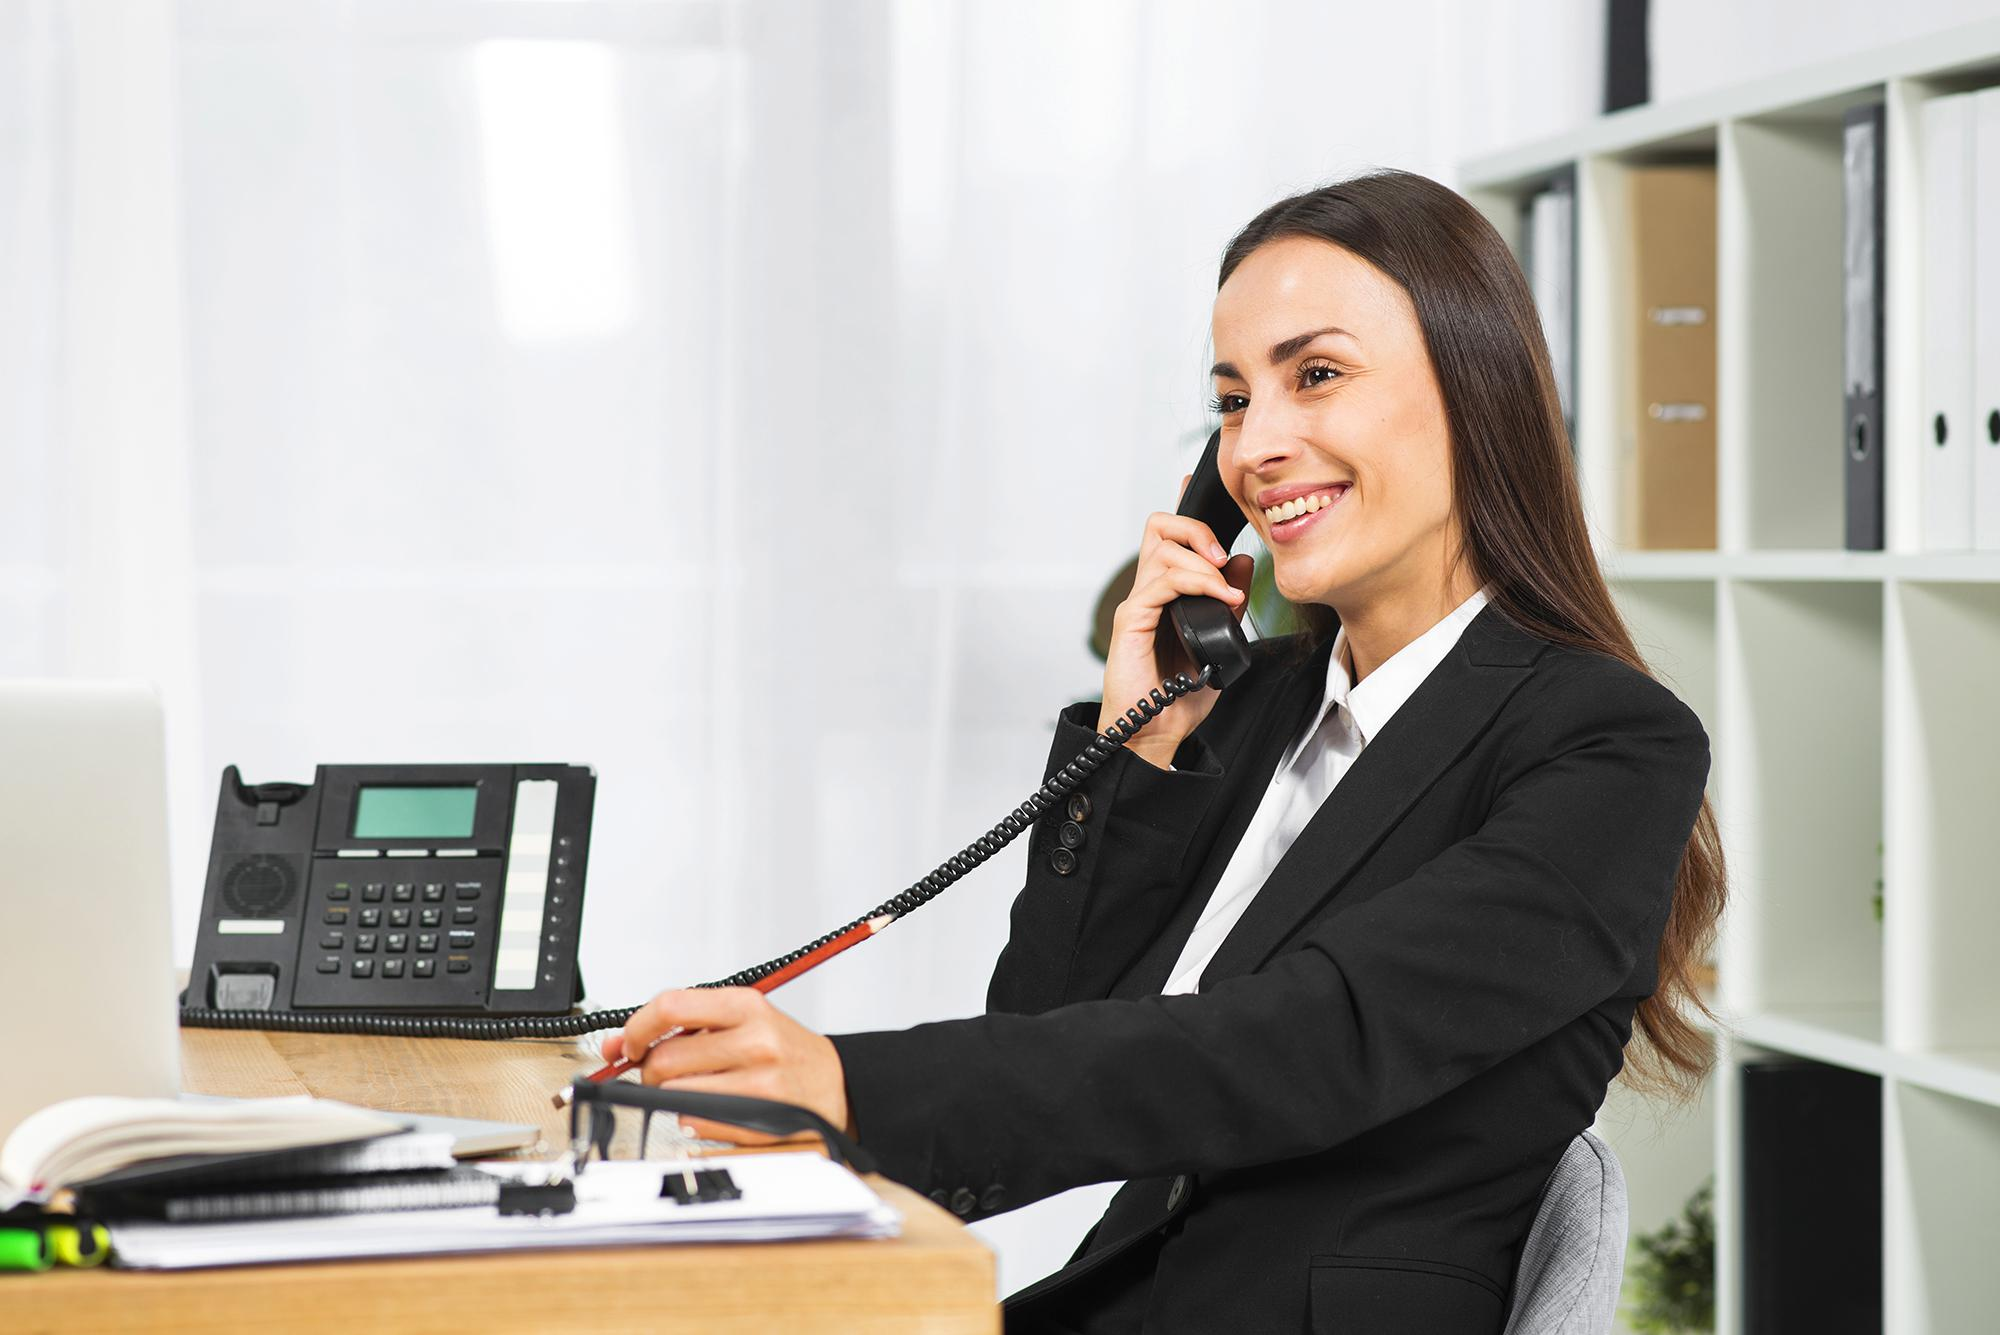 young-businesswoman-smiling-while-talking-telephone-office.jpg